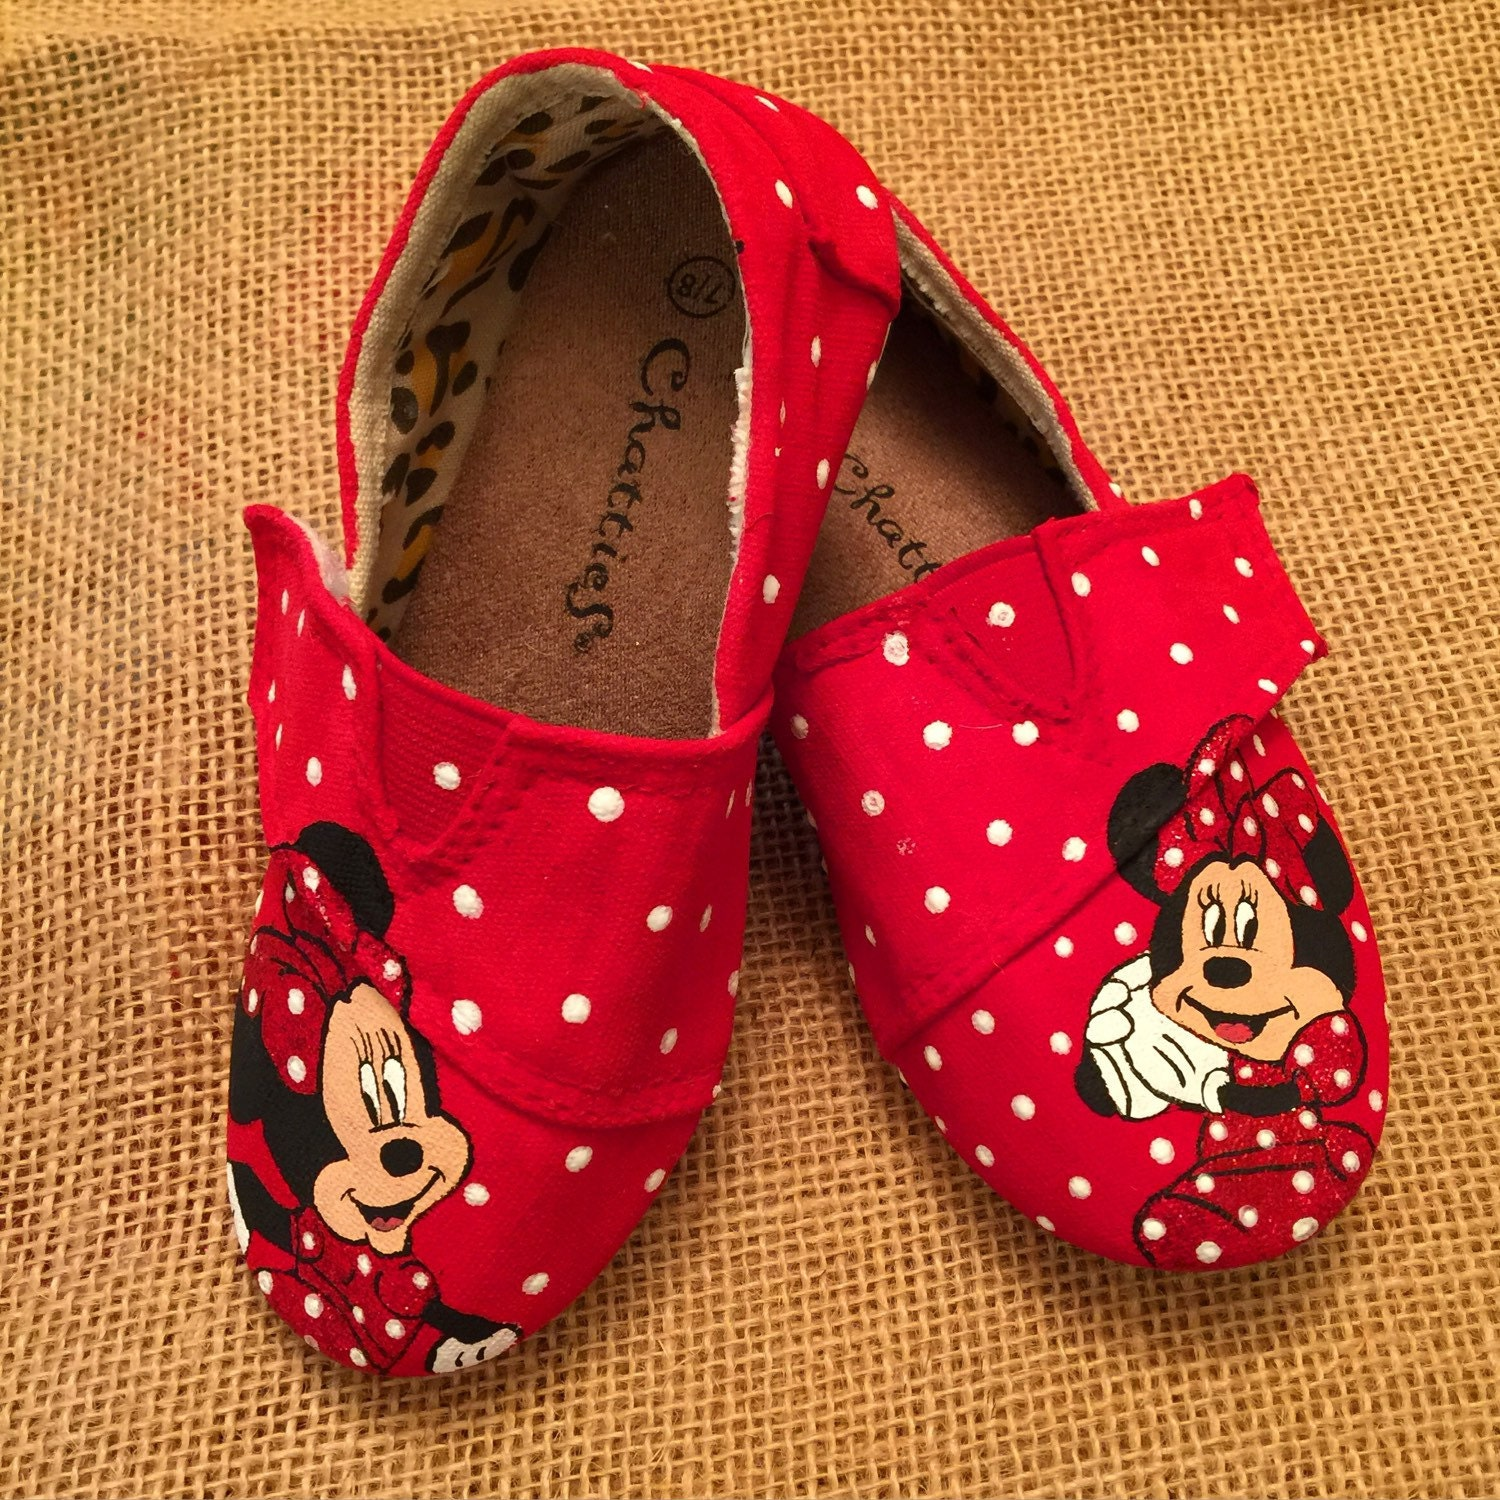 Find minnie mouse kids at Macy's Macy's Presents: The Edit - A curated mix of fashion and inspiration Check It Out Free Shipping with $49 purchase + Free Store Pickup.